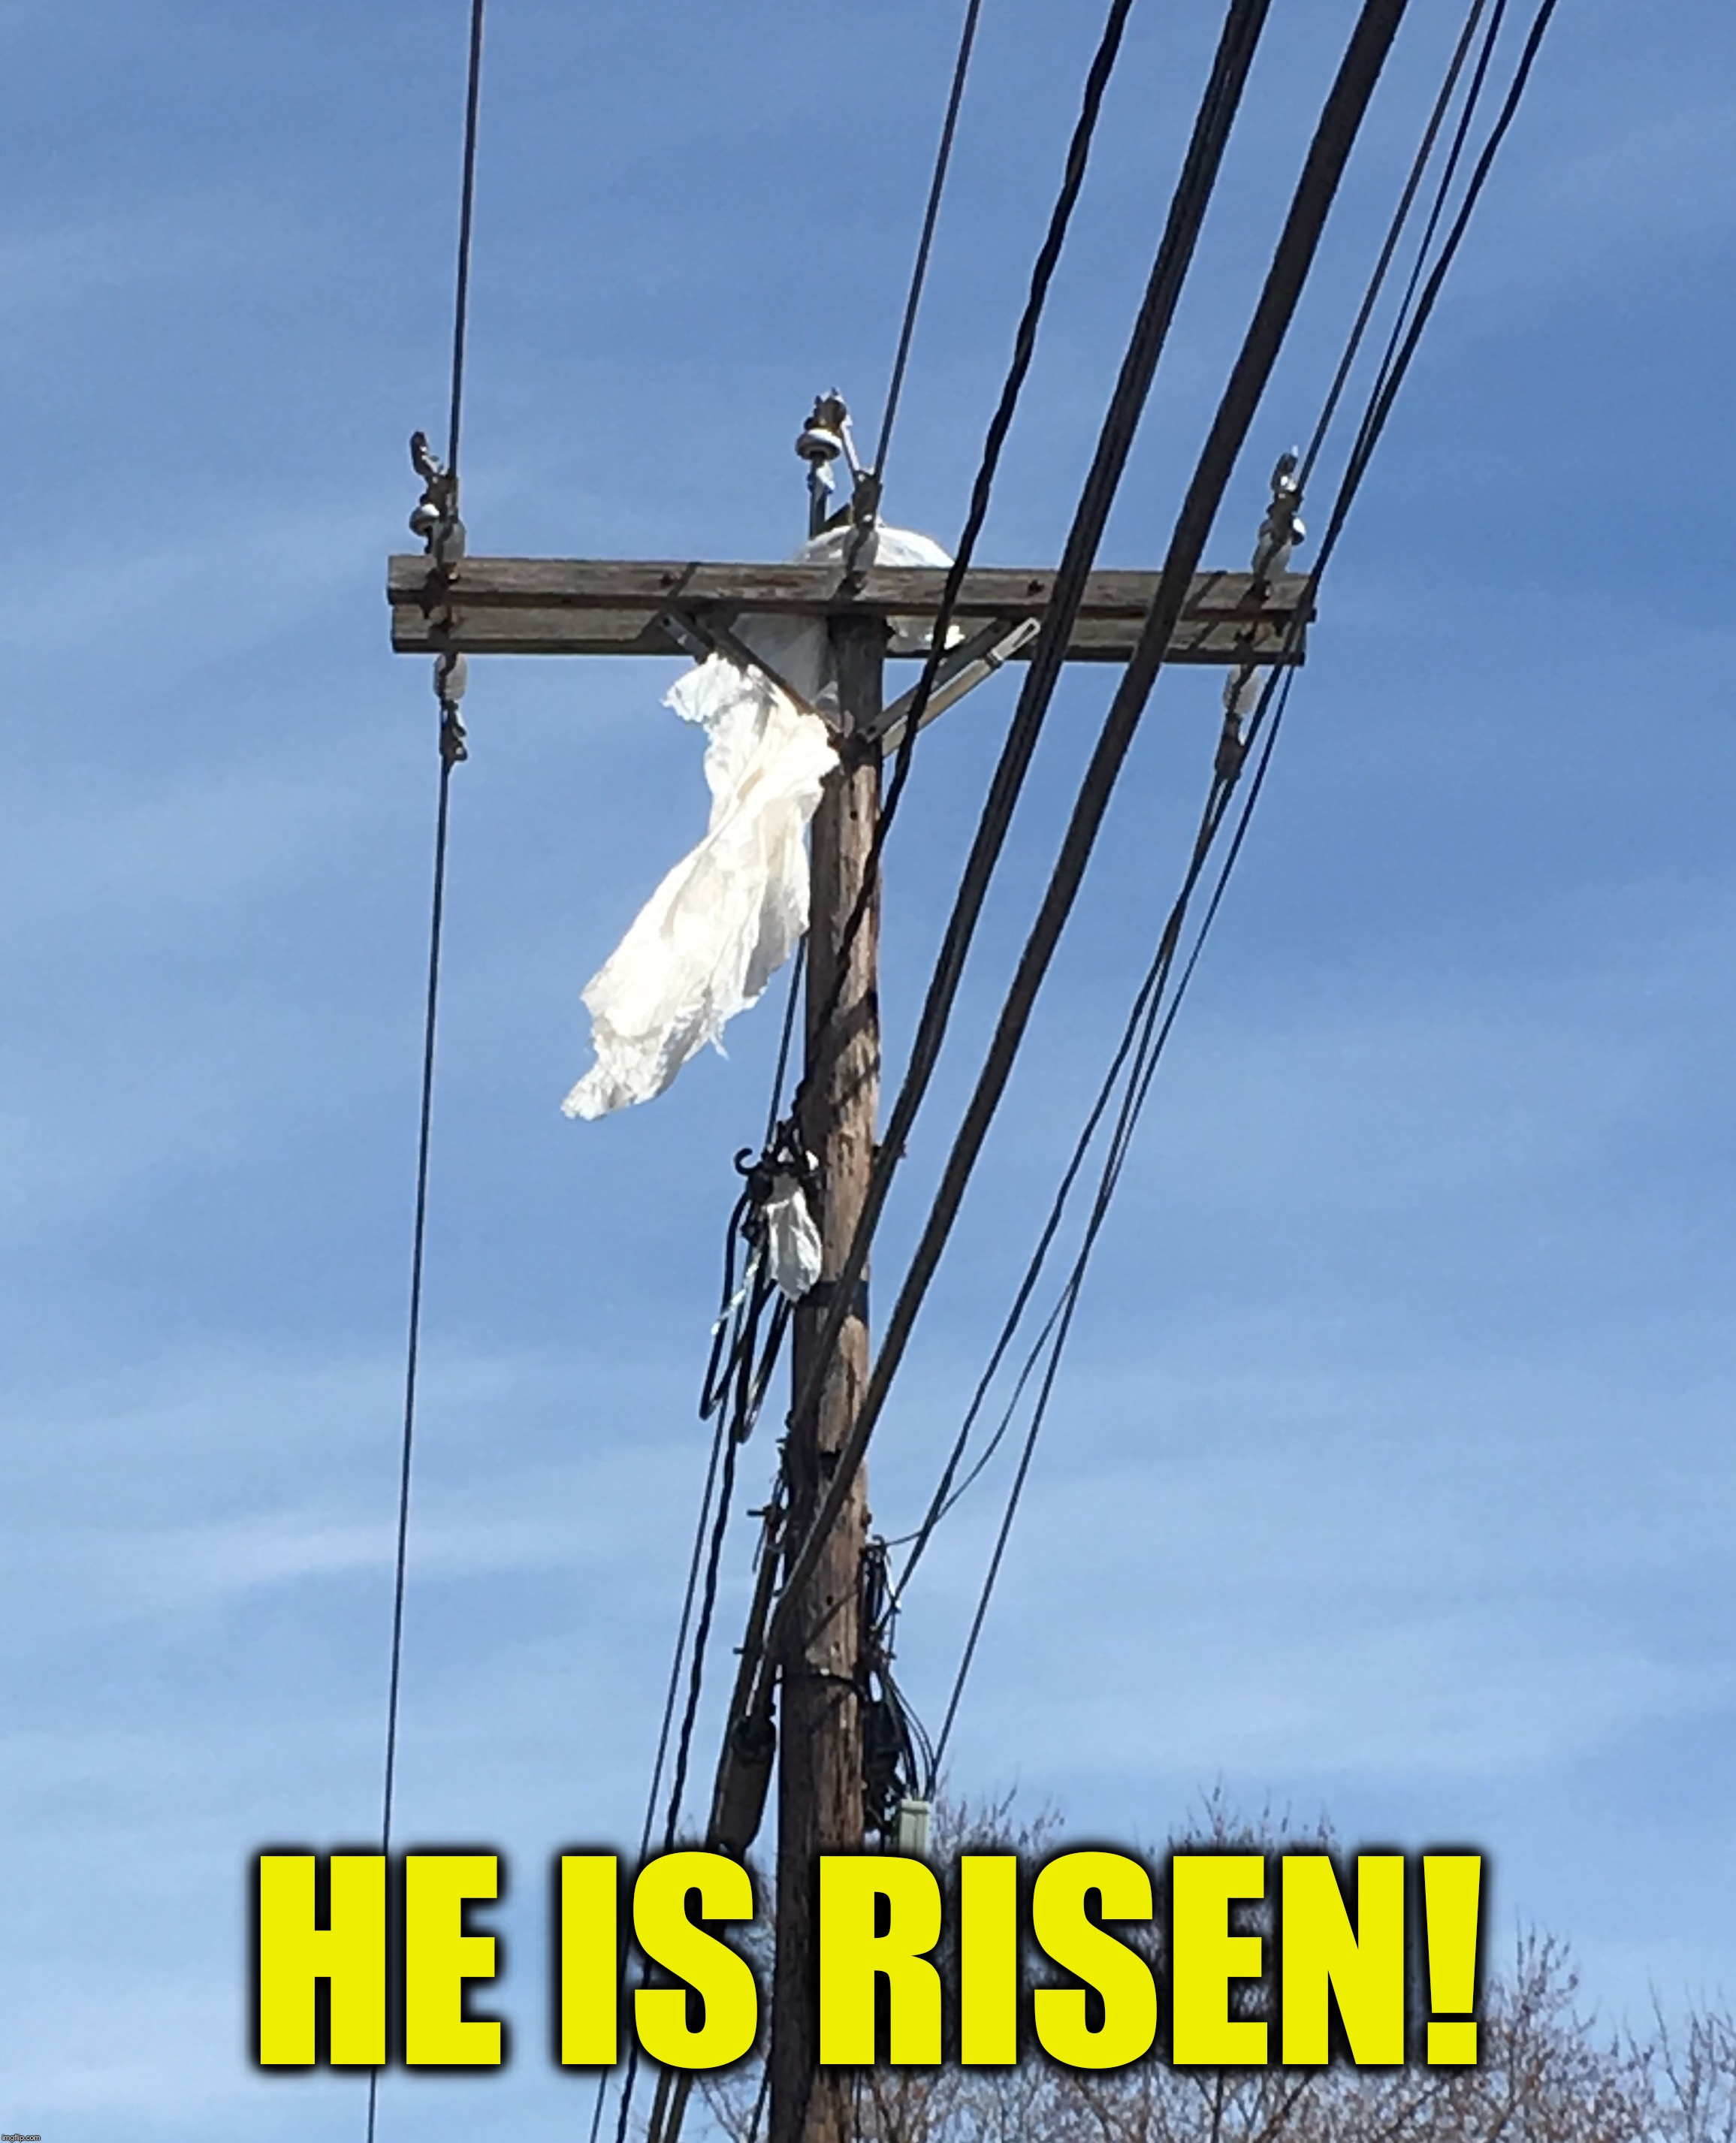 No disrespect for the Lord, I just thought this was cool :-) | HE IS RISEN! | image tagged in memes,easter,he is risen,telephone pole | made w/ Imgflip meme maker